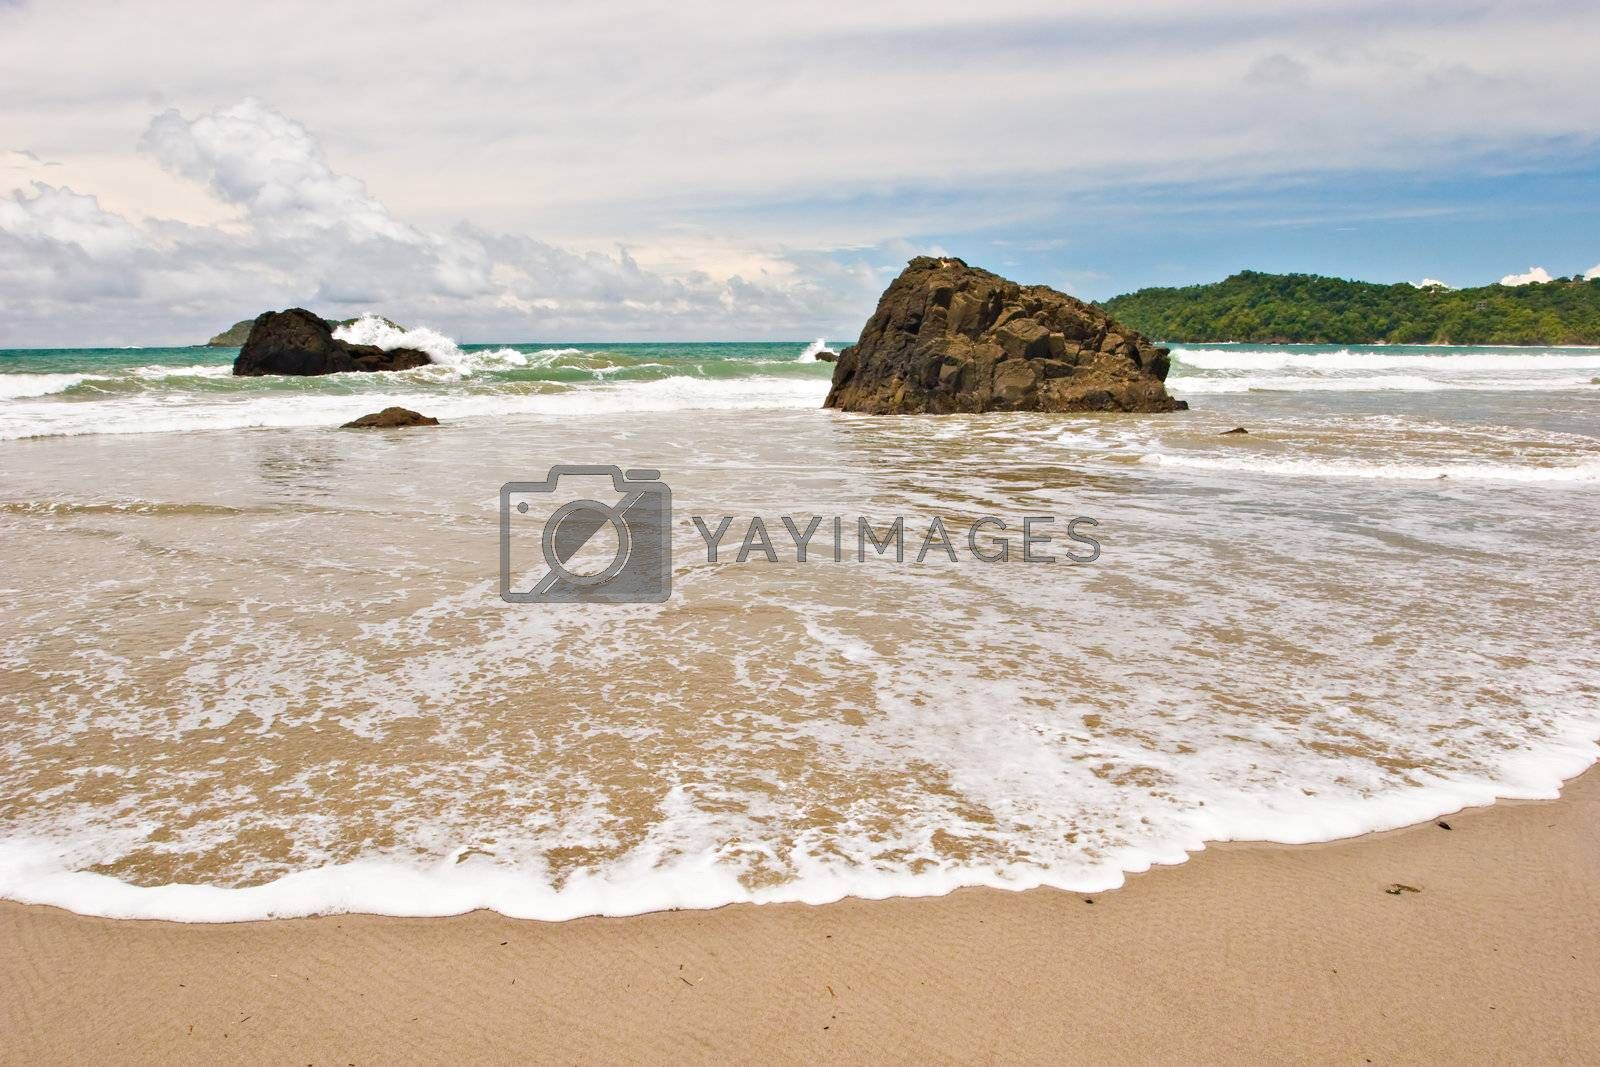 Photo of a wide wave at the beach on the Pacific Coast of Costa Rica.